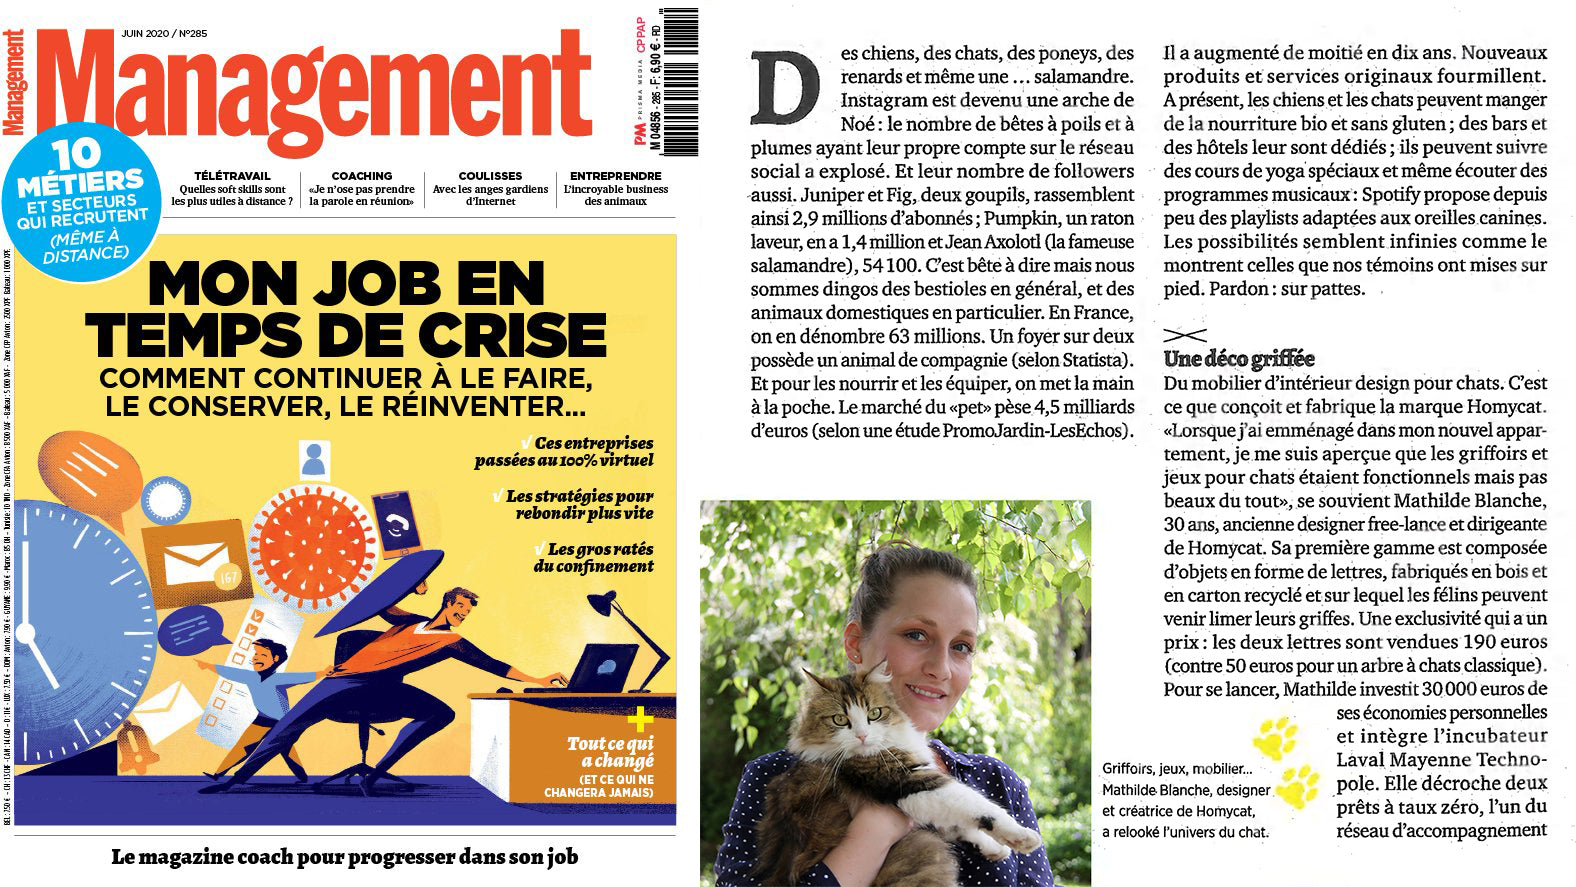 Article management juin 2020